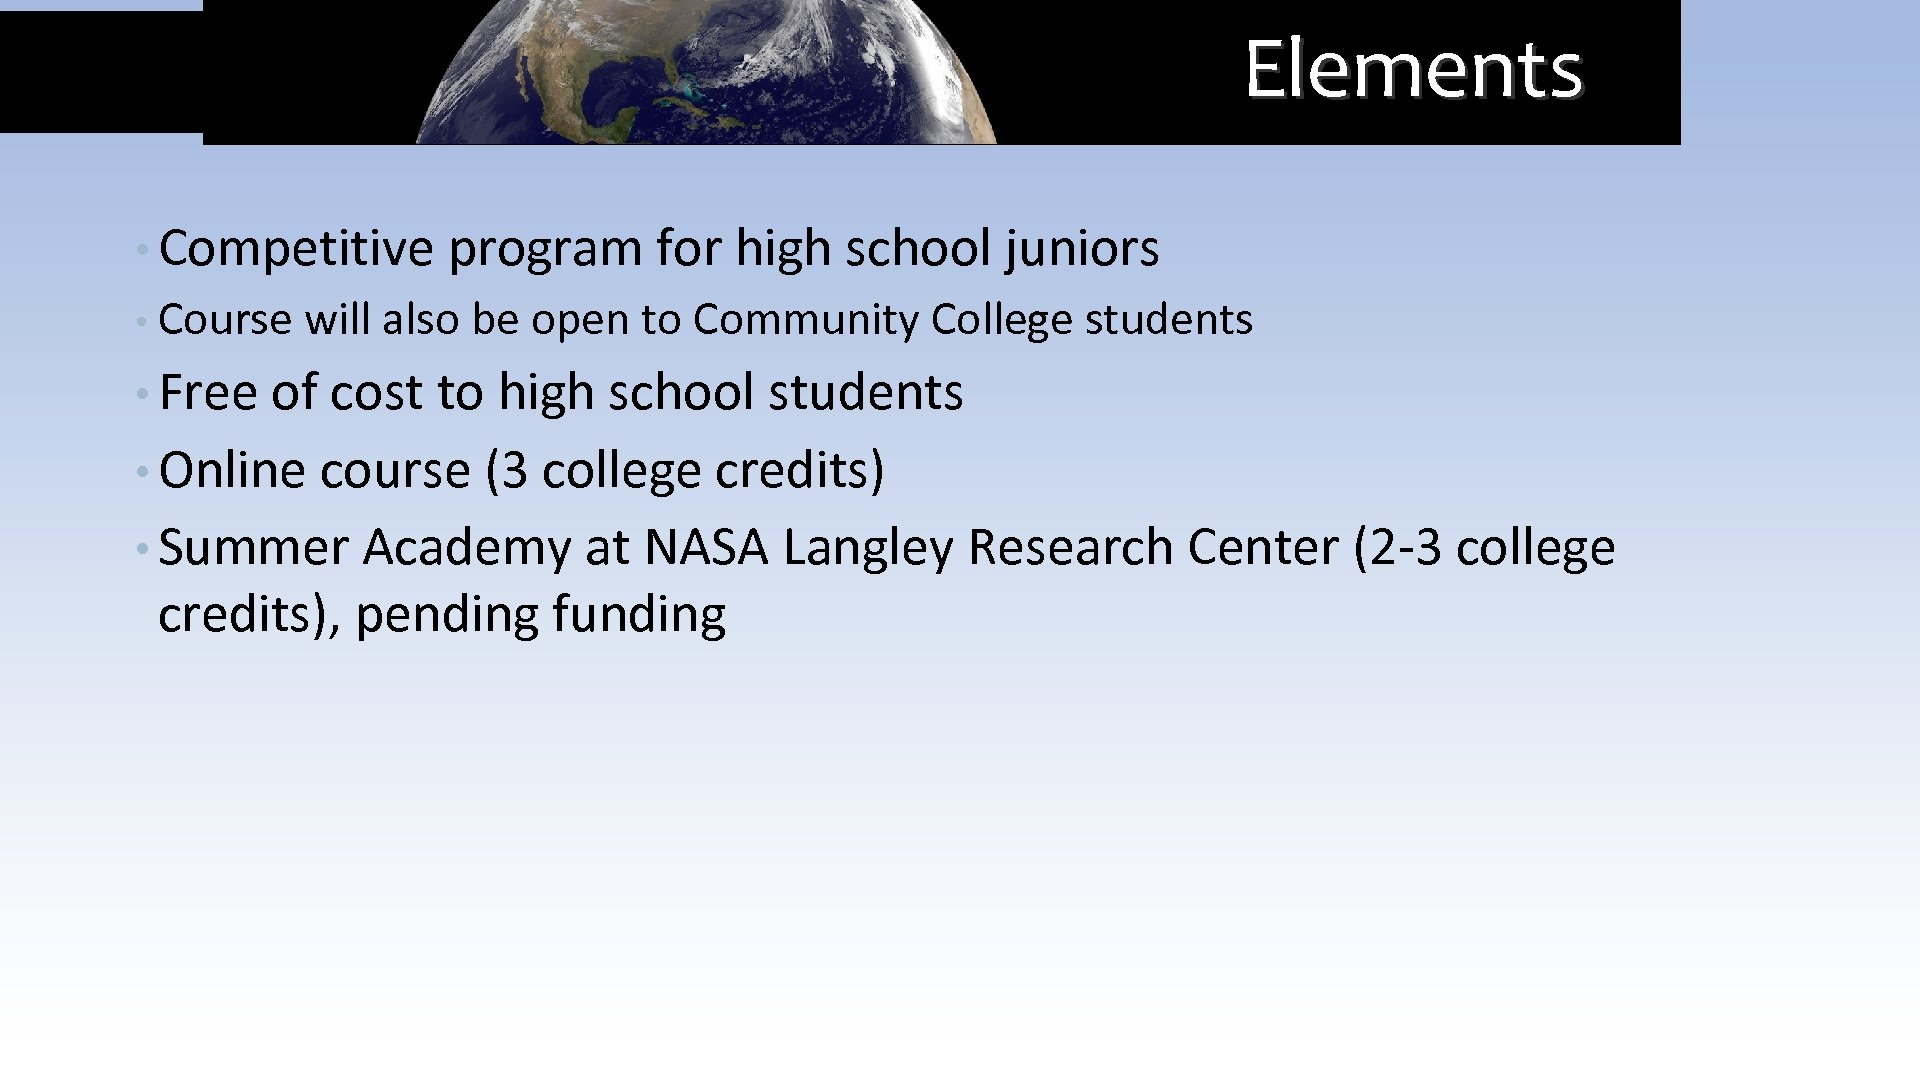 Elements • Competitive program for high school juniors • Course will also be open